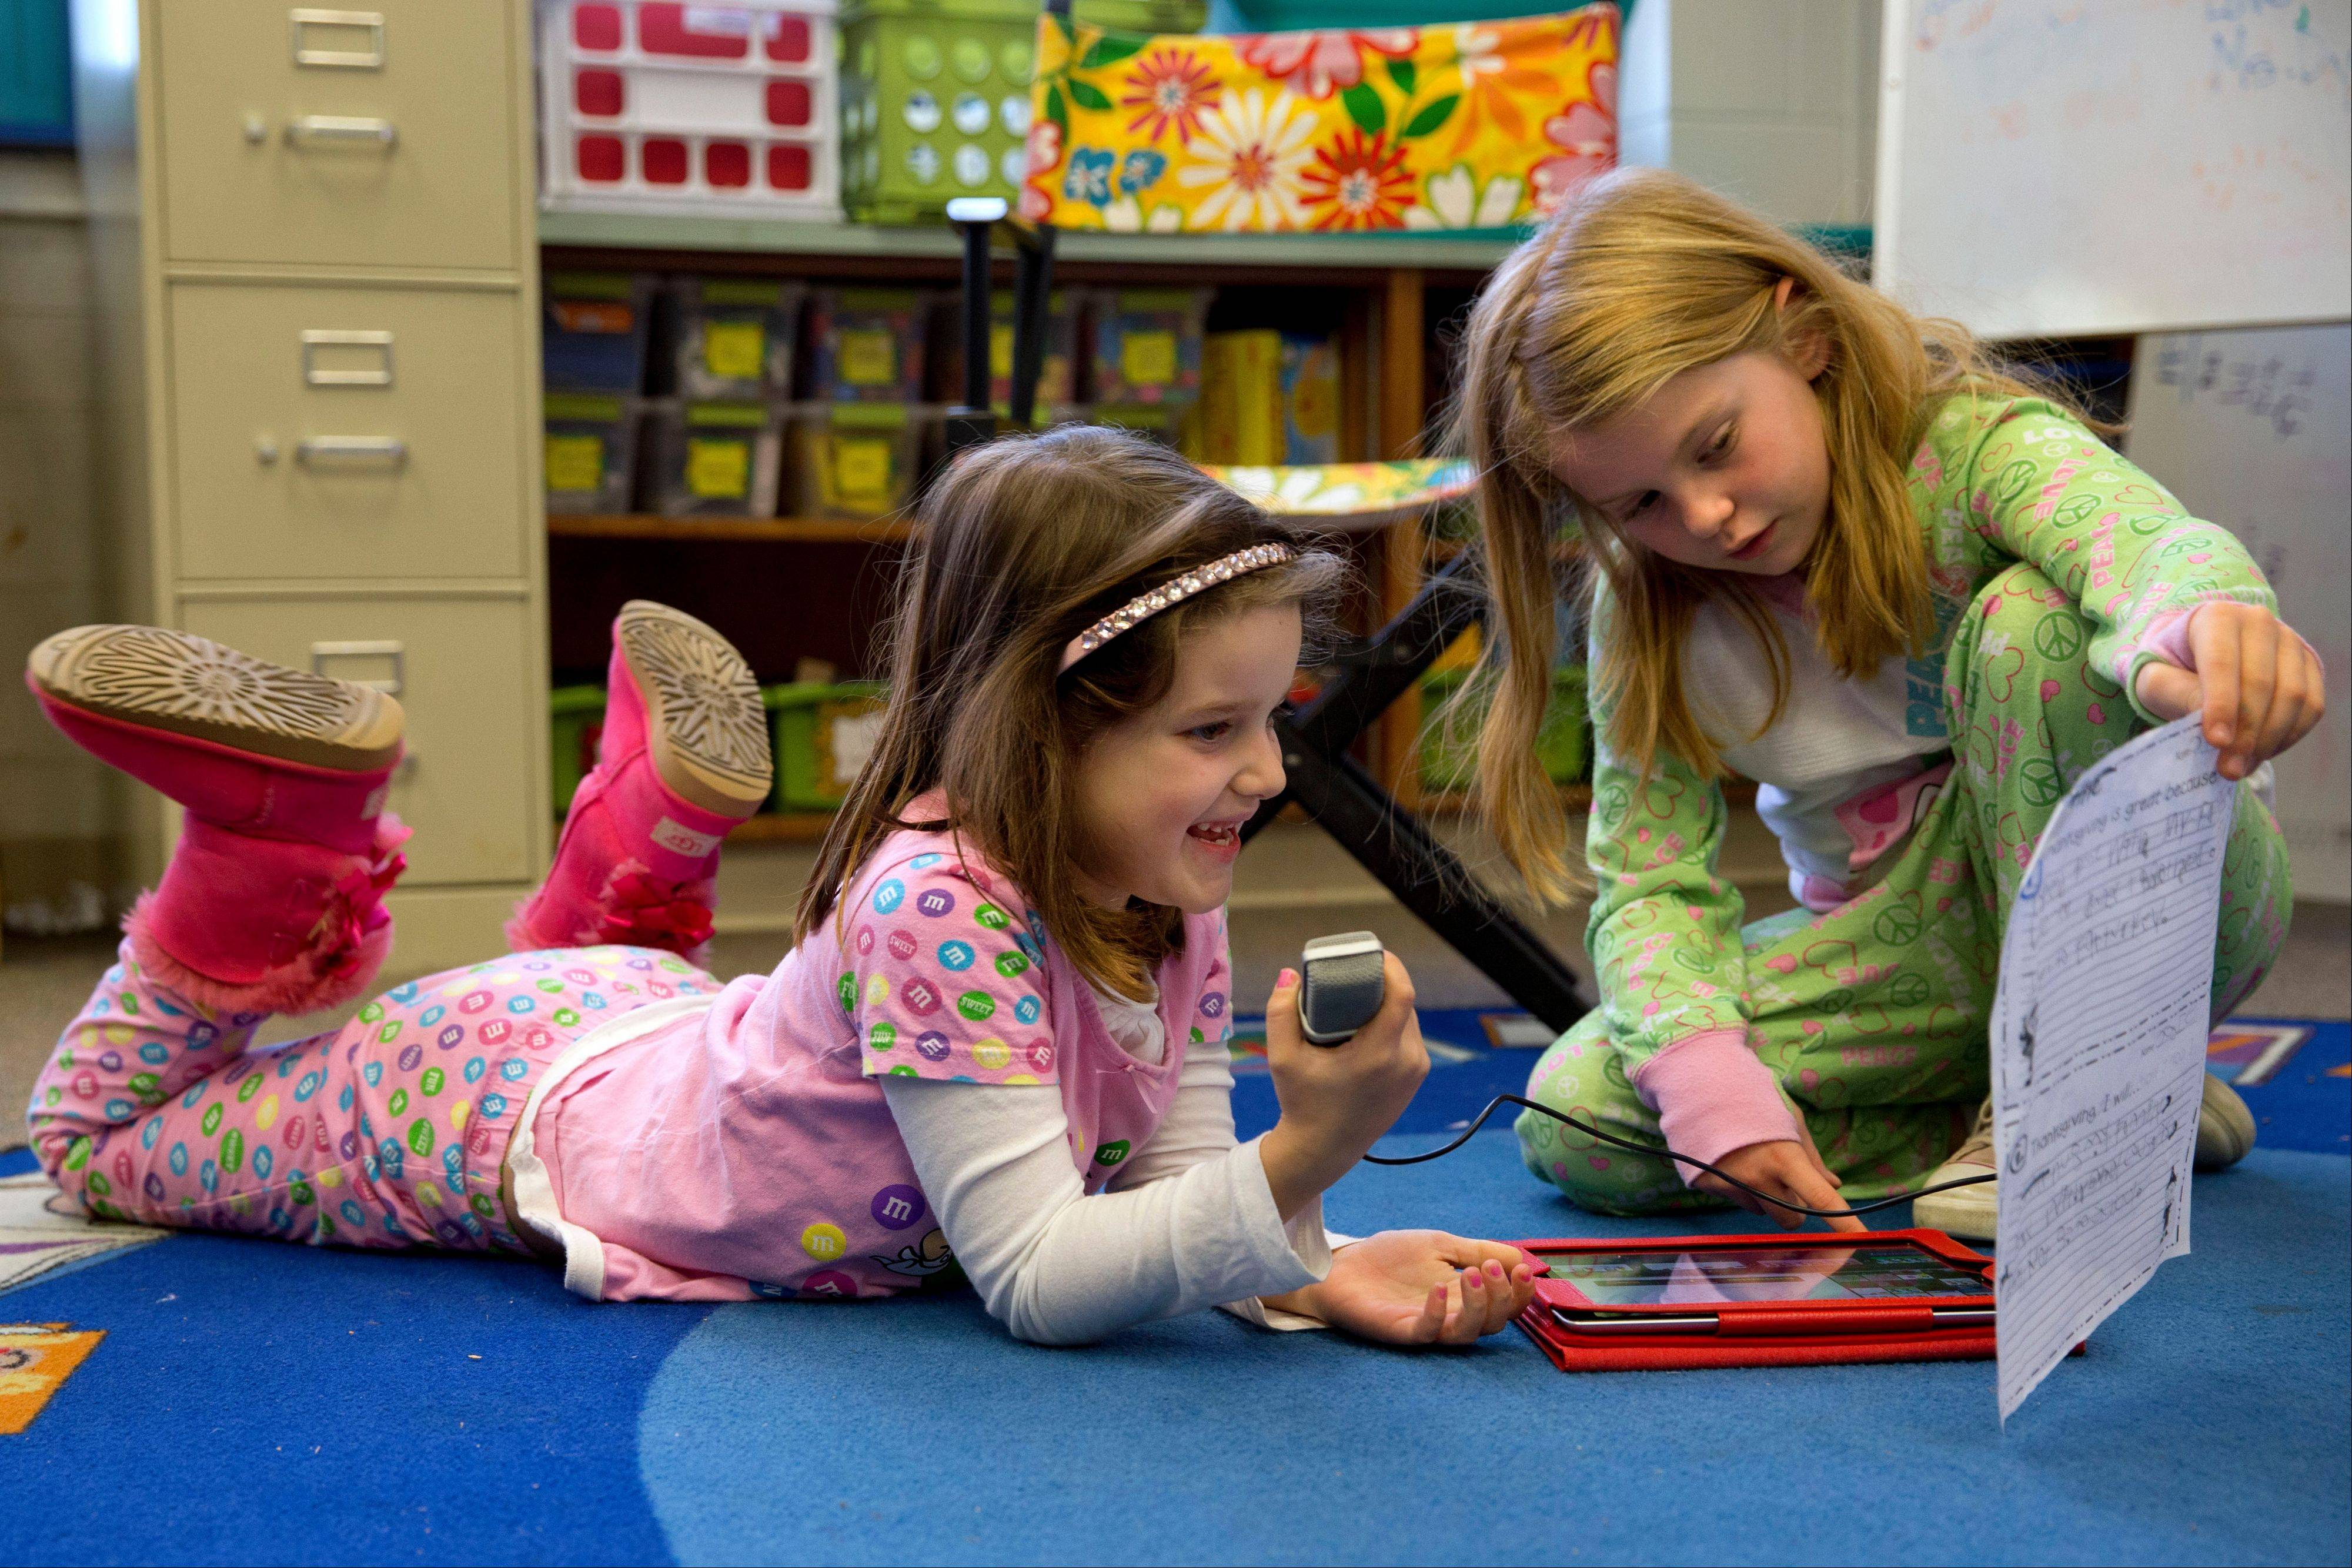 Josie Barton, 7, left, records audio into an iPad for an iMovie project with classmate Marin Peale, 7, in their multi-grade first and second grade class at Jamestown Elementary School in Arlington, Va.